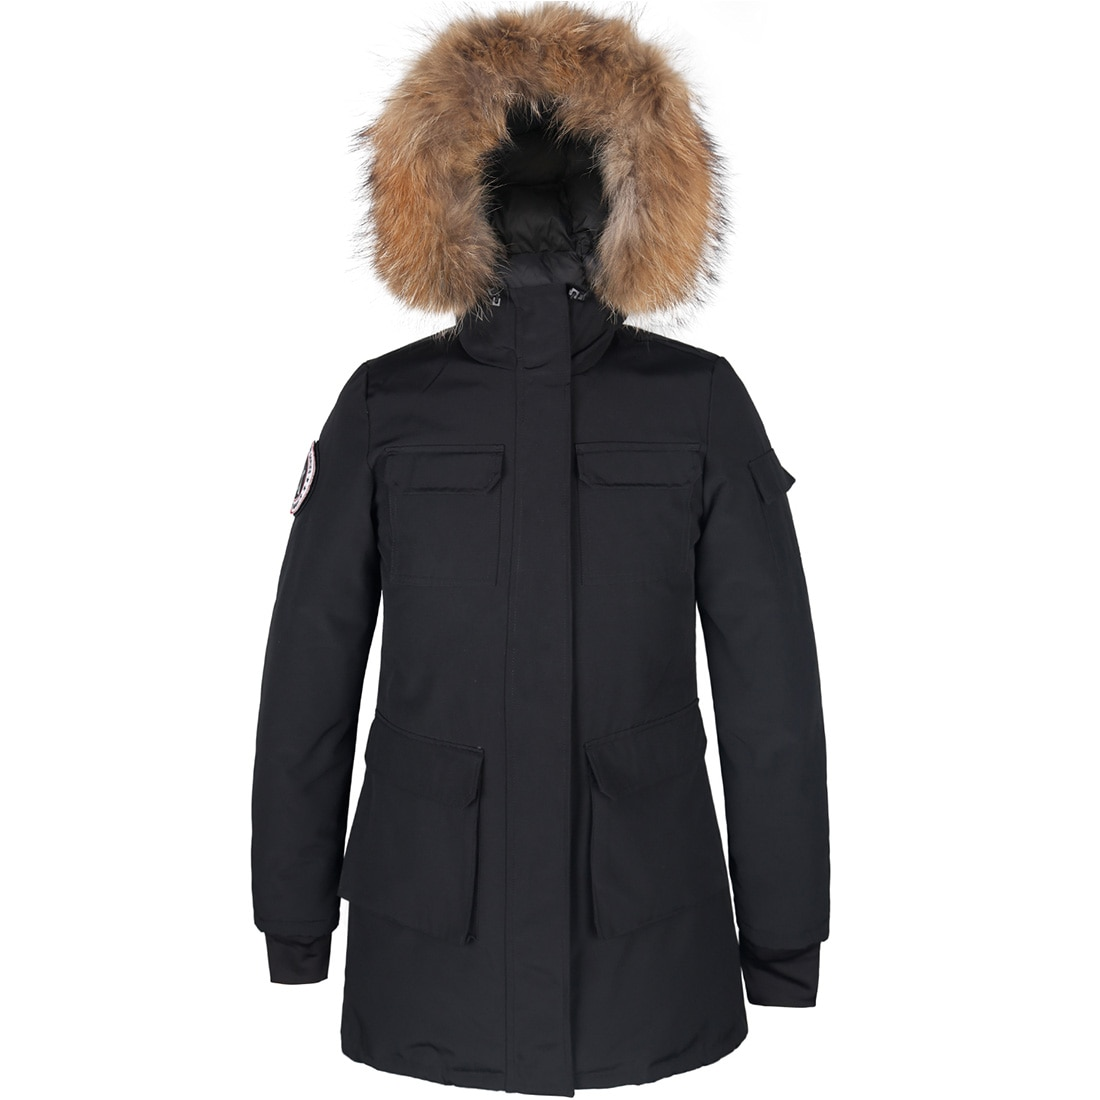 Women's Winter New Down Parkas Lesmart Fur Collar Hooded Long Down Coat Thick Female Fashion Outerwear Pocket Puffer Jackets